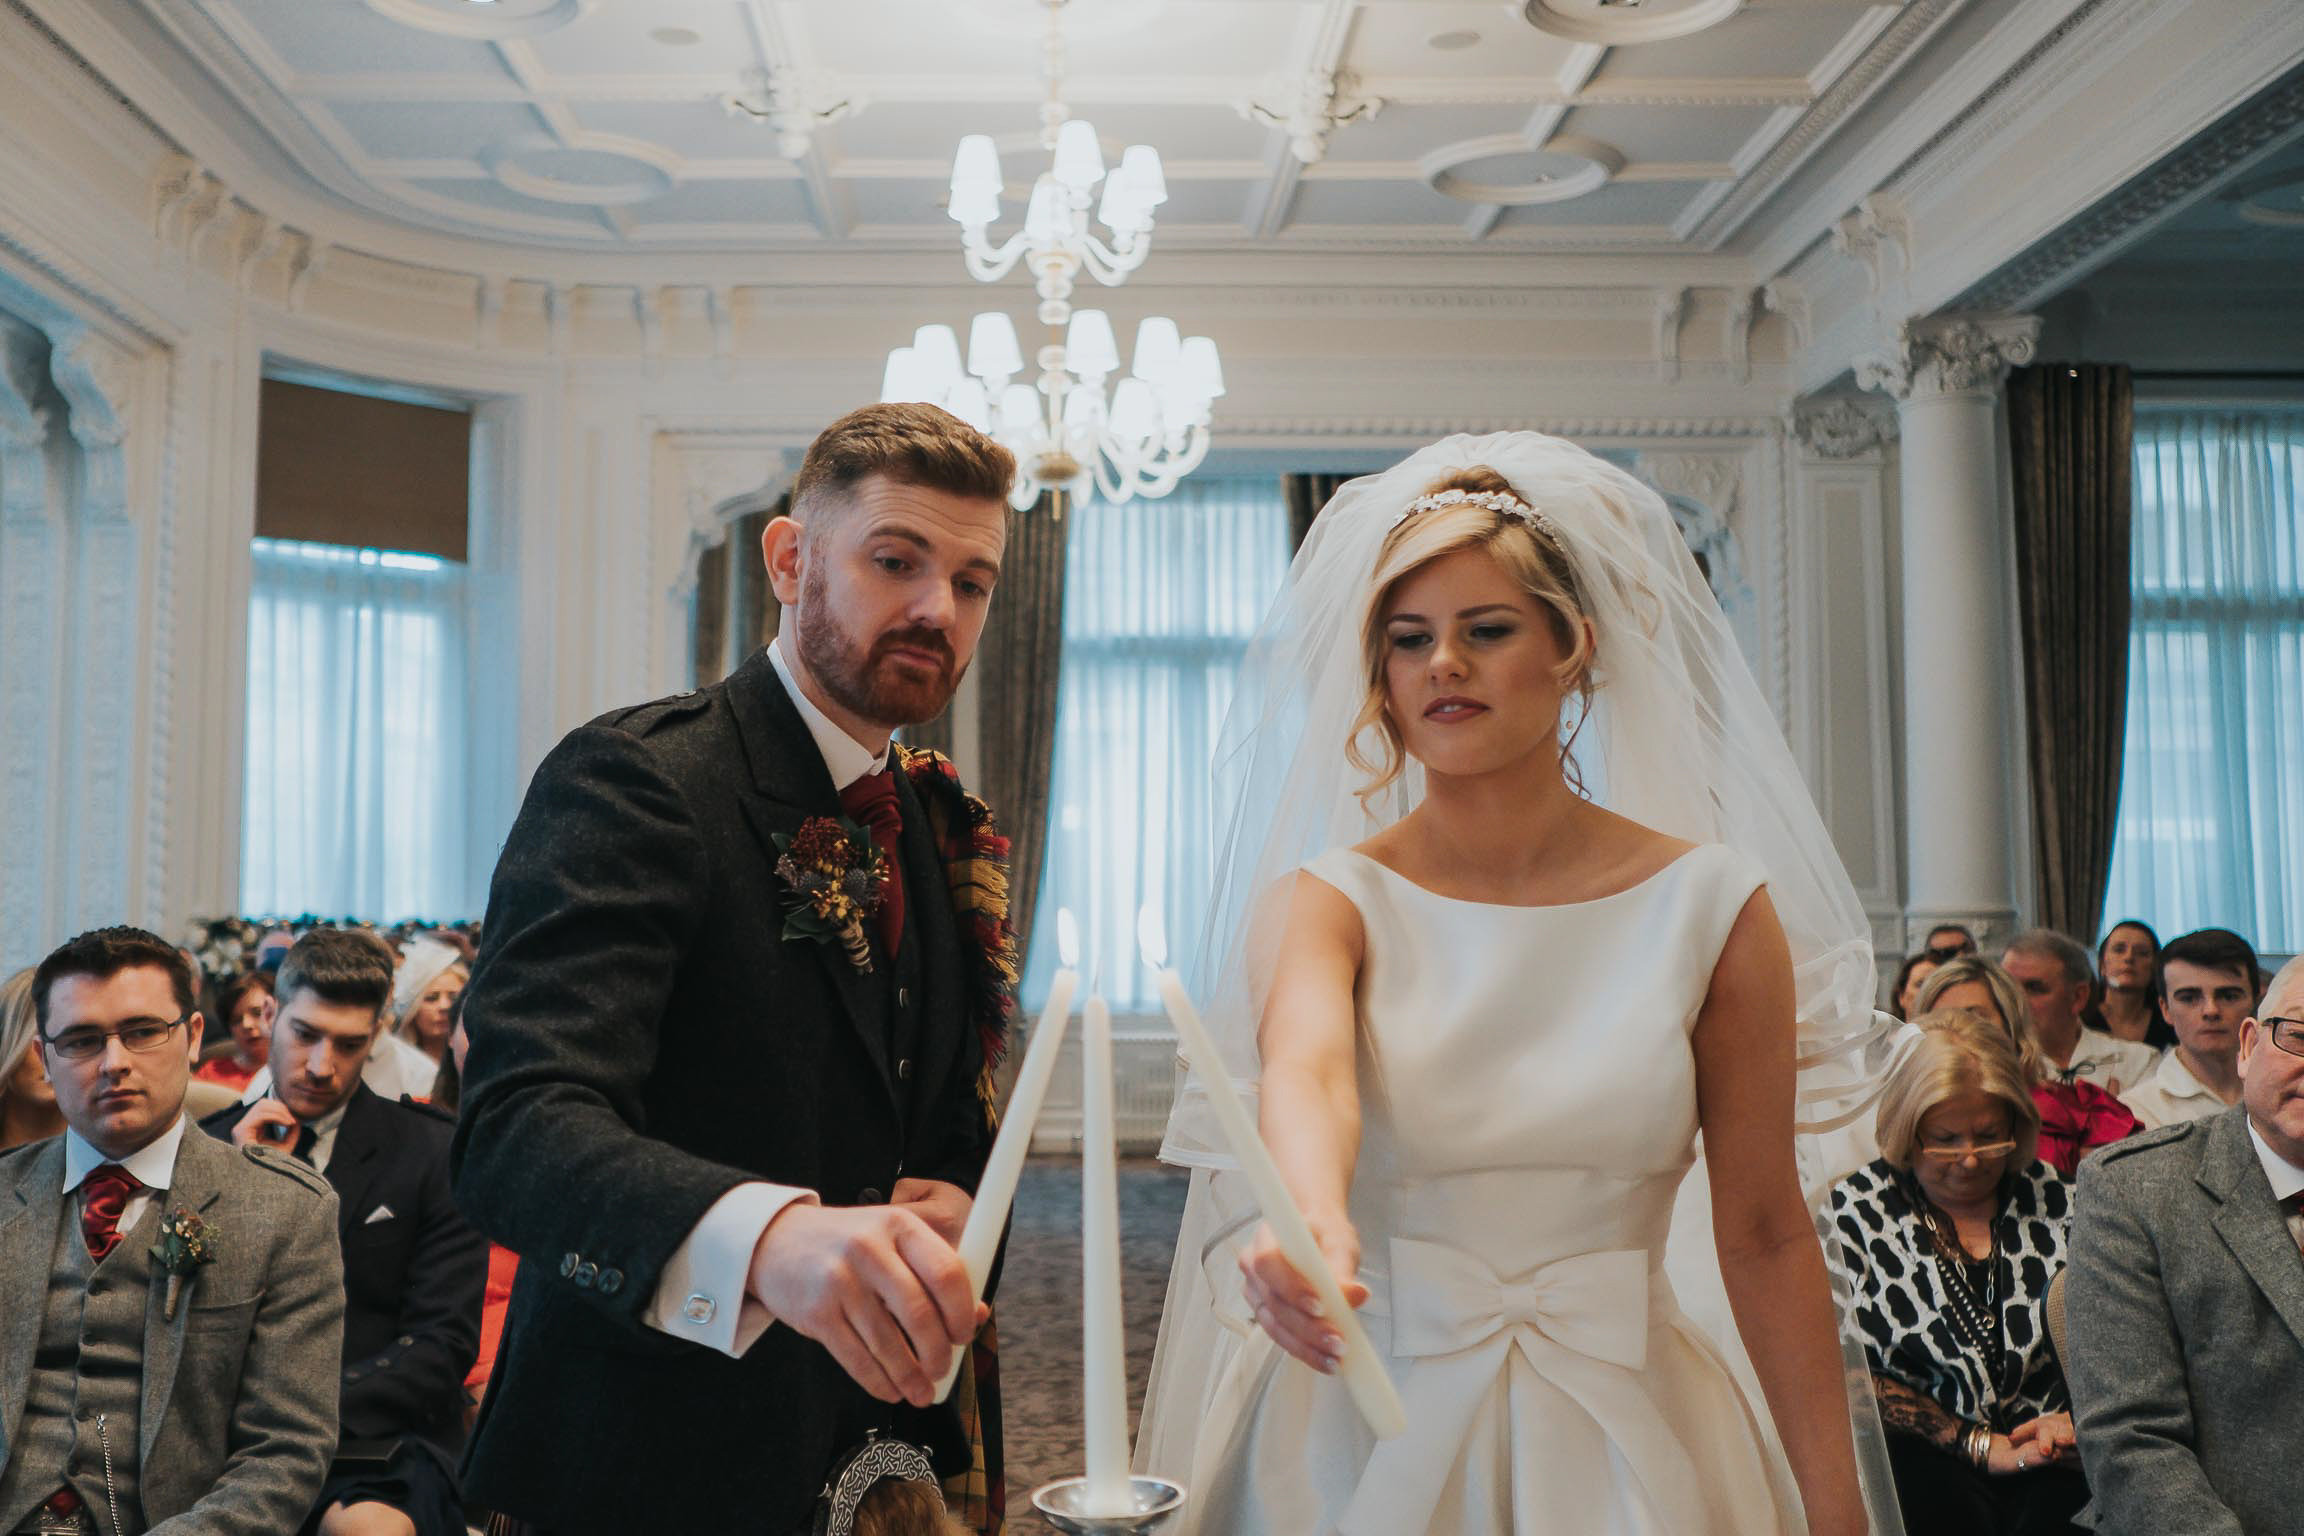 the bride and groom lighting the Unity Candle  during their wedding ceremony in Liverpool